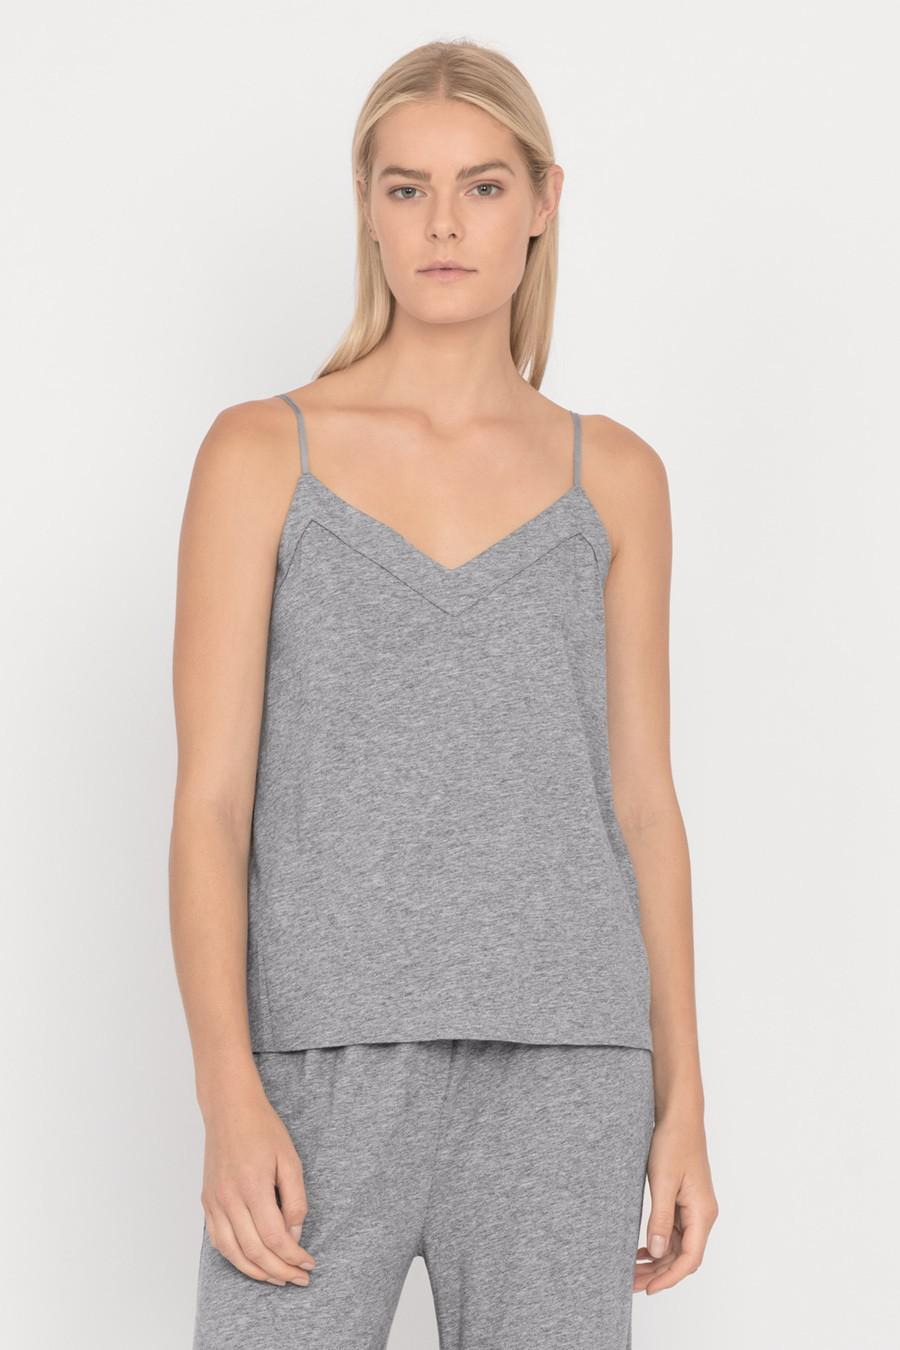 Women's Pima Cami Top in Heather Grey   Size: Large   Pima Modal Blend by Cuyana 1